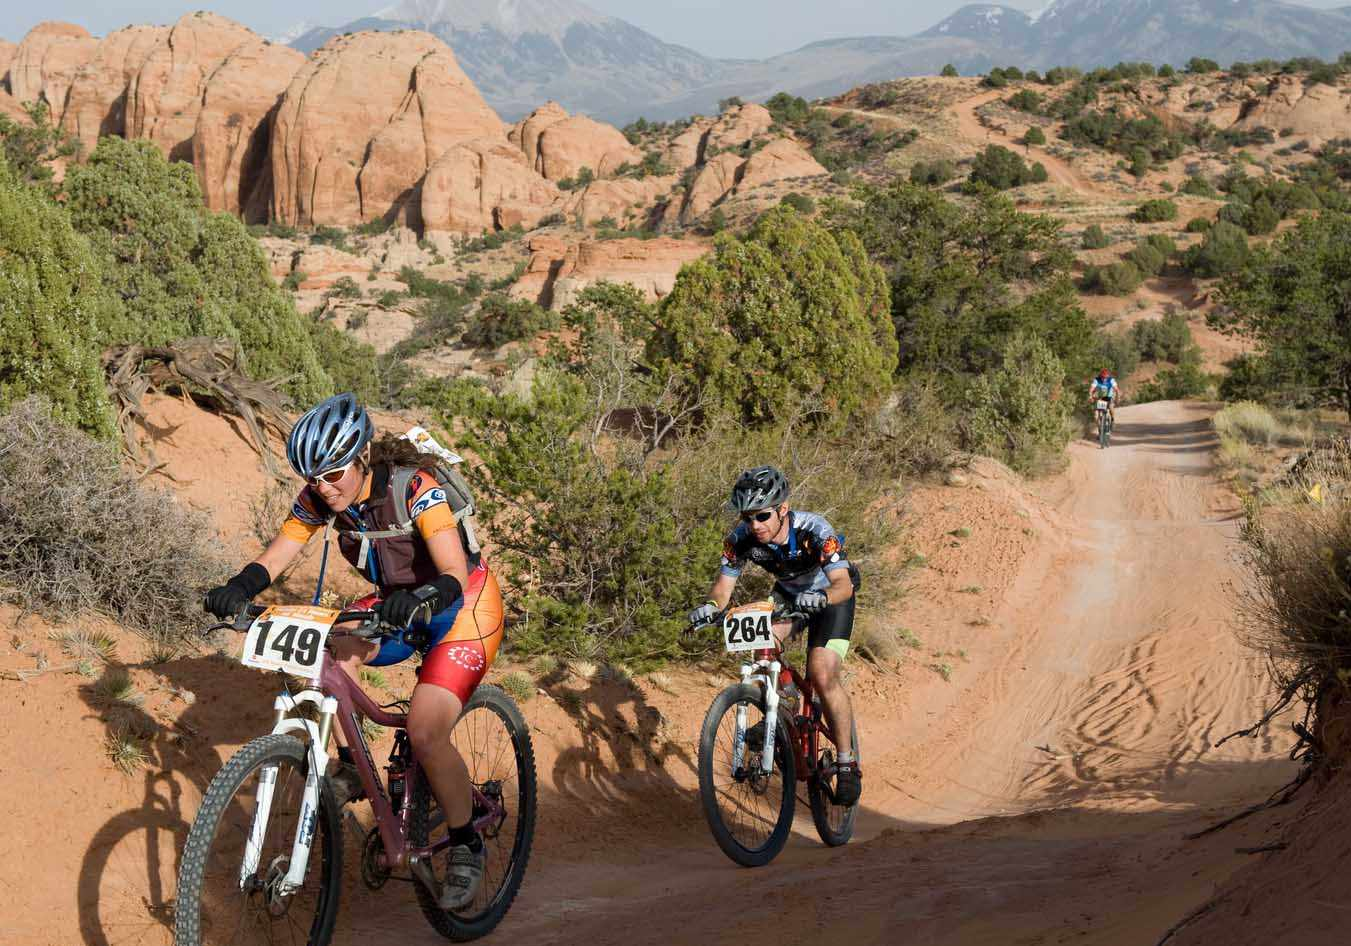 The 24-Hour mountain bike national championships will be held in Moab, Utah in October.